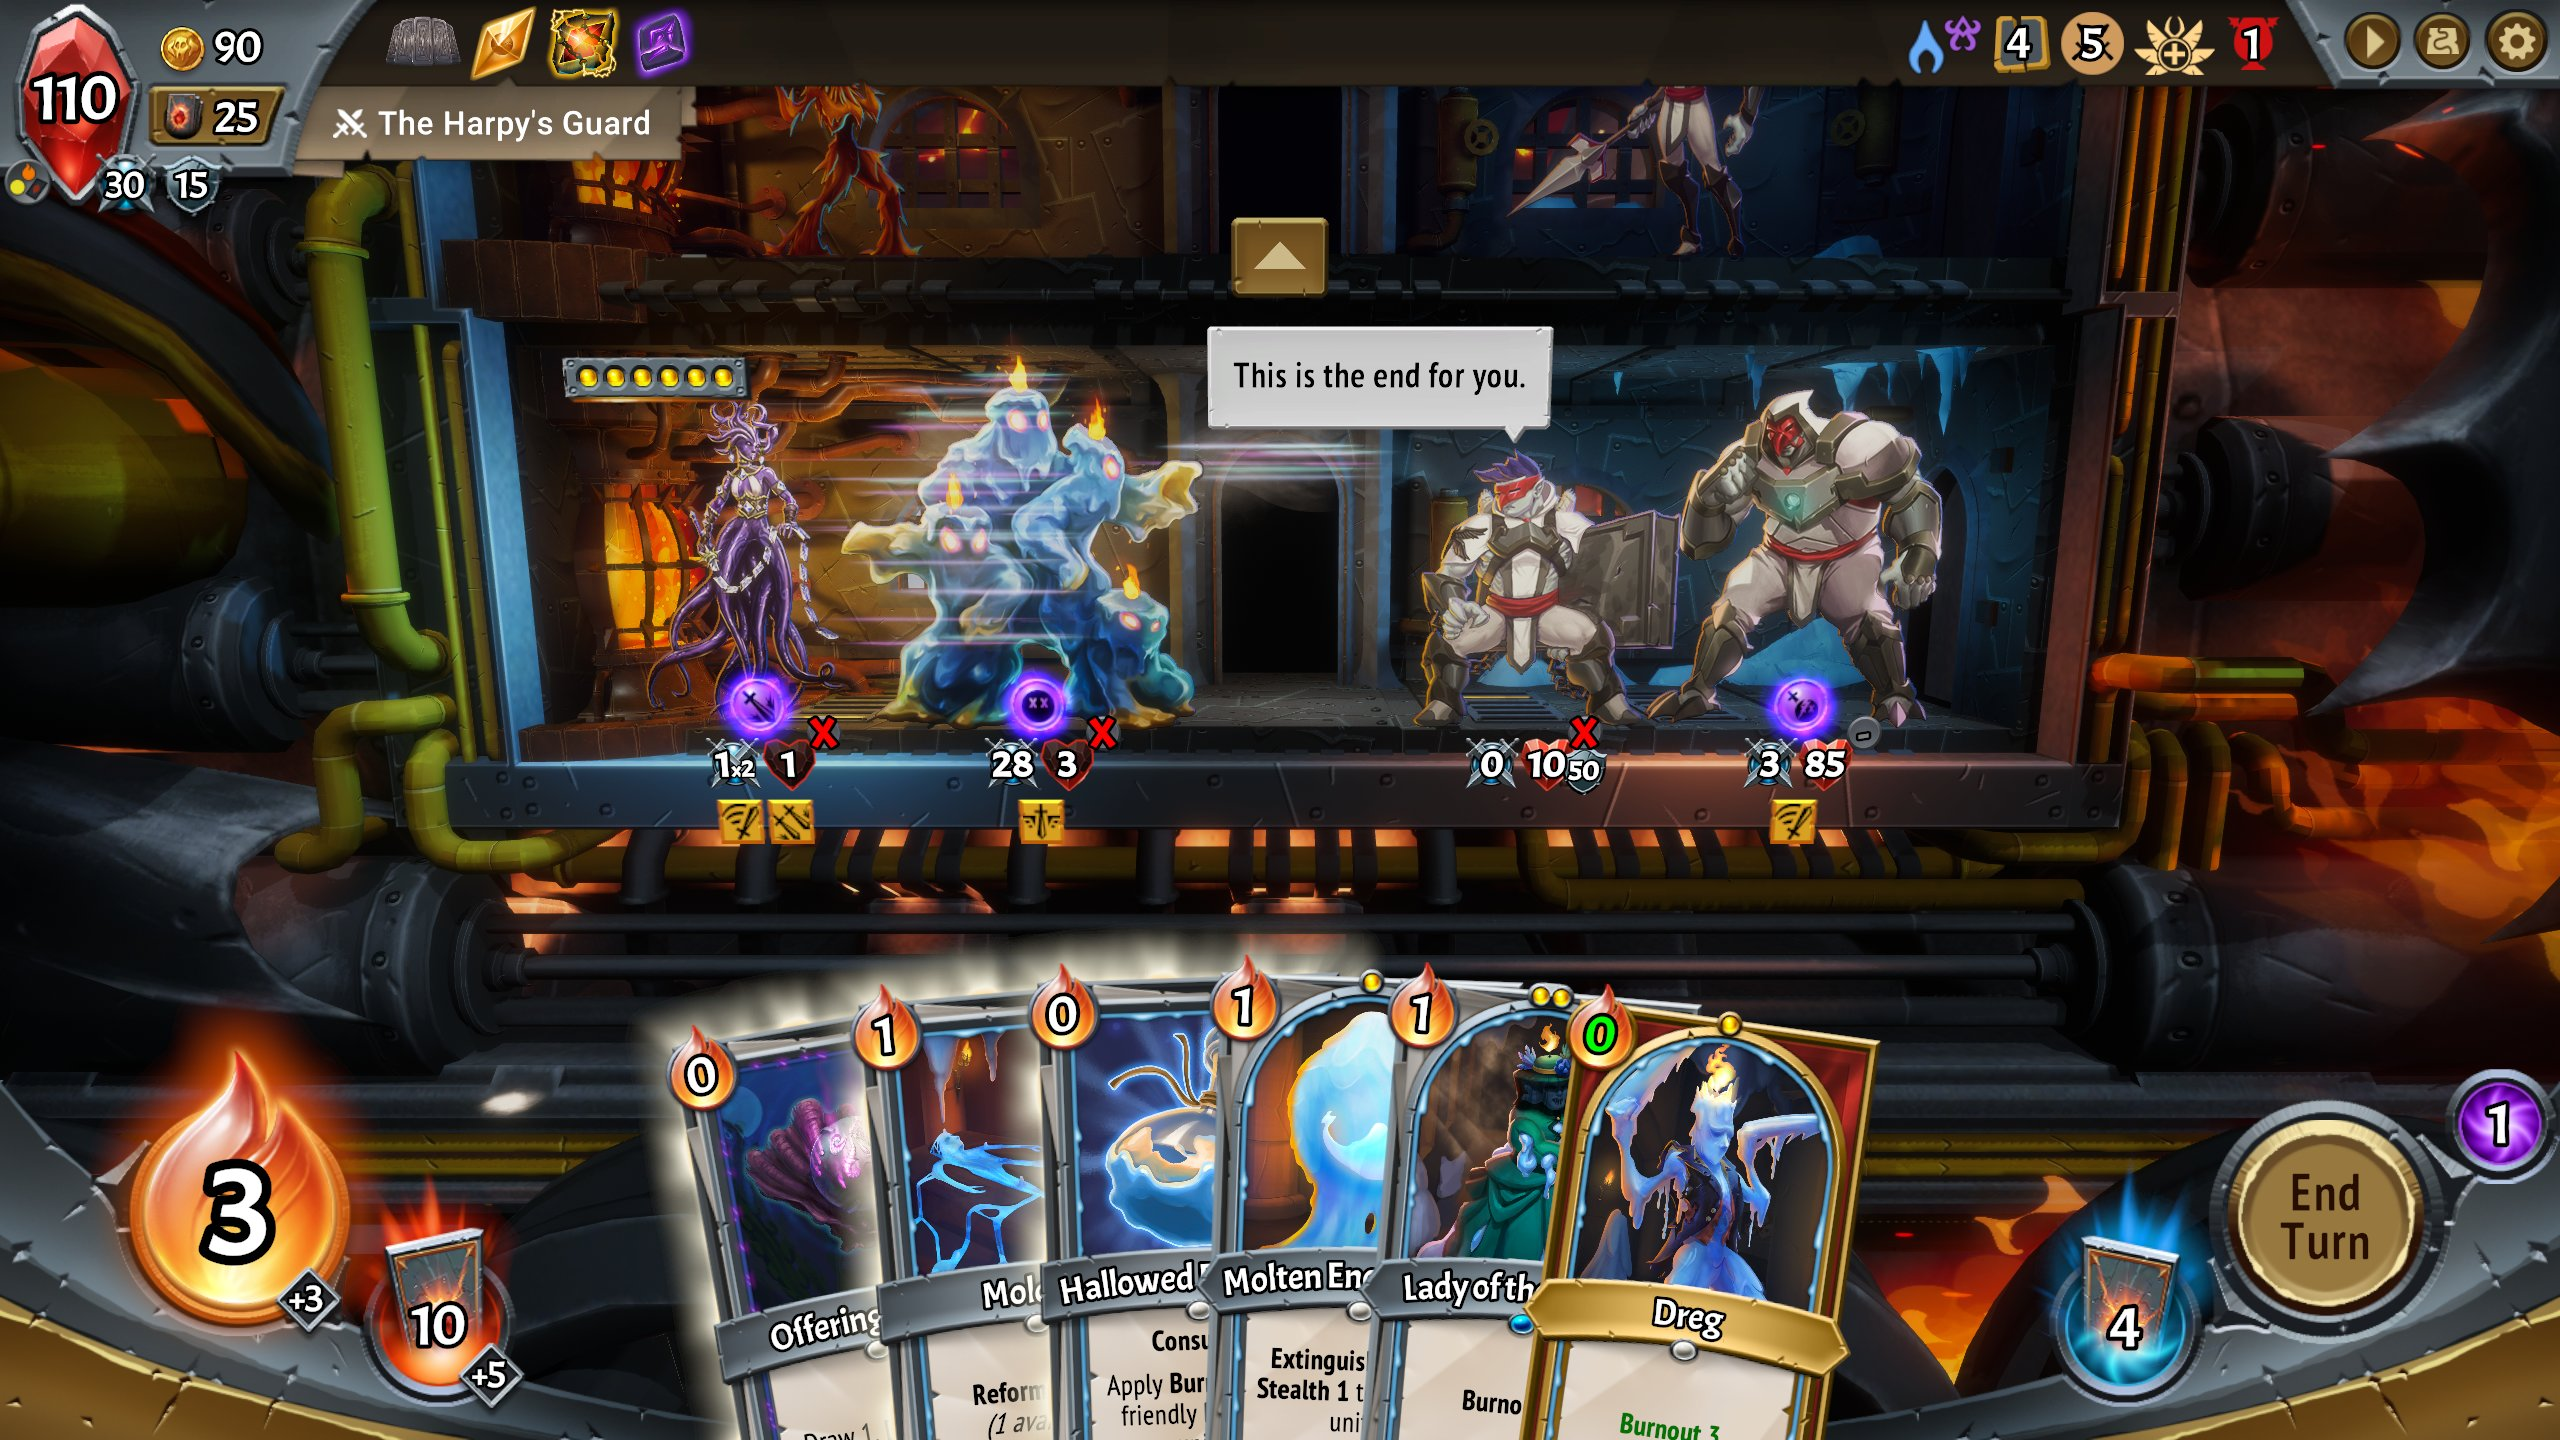 On one side of a train carriage, a mass of monsters resembling walking candles, back up by a purple squid woman. Facing them, on the left side, are two big soldiers armoured in white cloth and grey mental. At the bottom of the screen, the players deck of cards is arrayed.